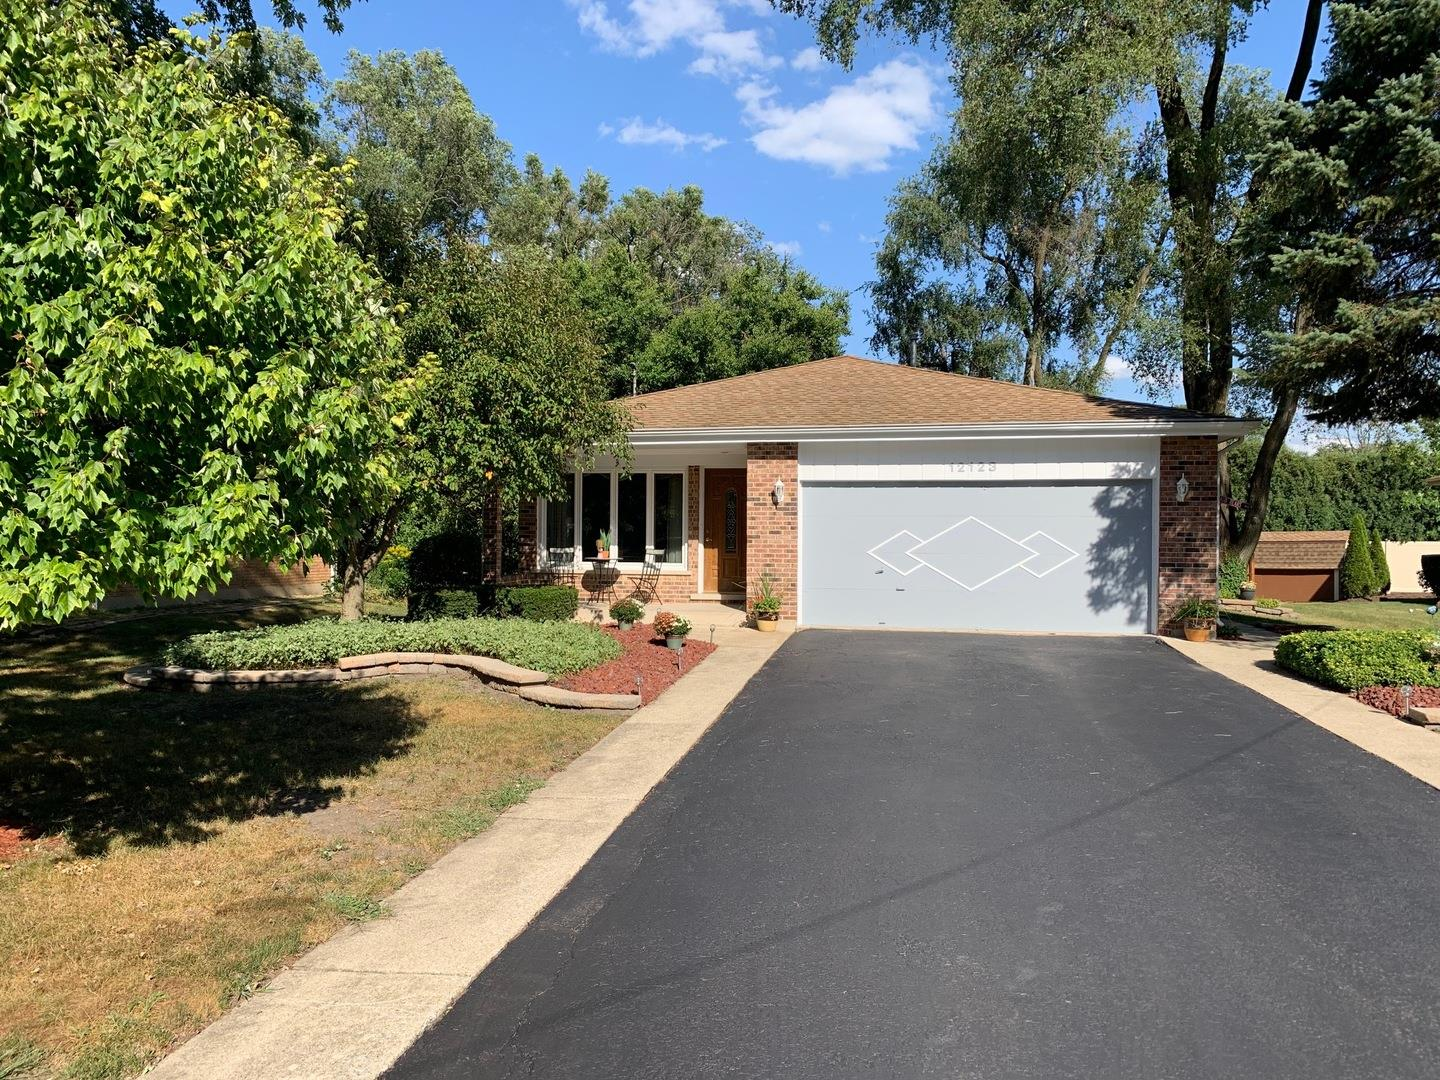 12123 S 72nd Court, Palos Heights, IL 60463 - #: 10848289